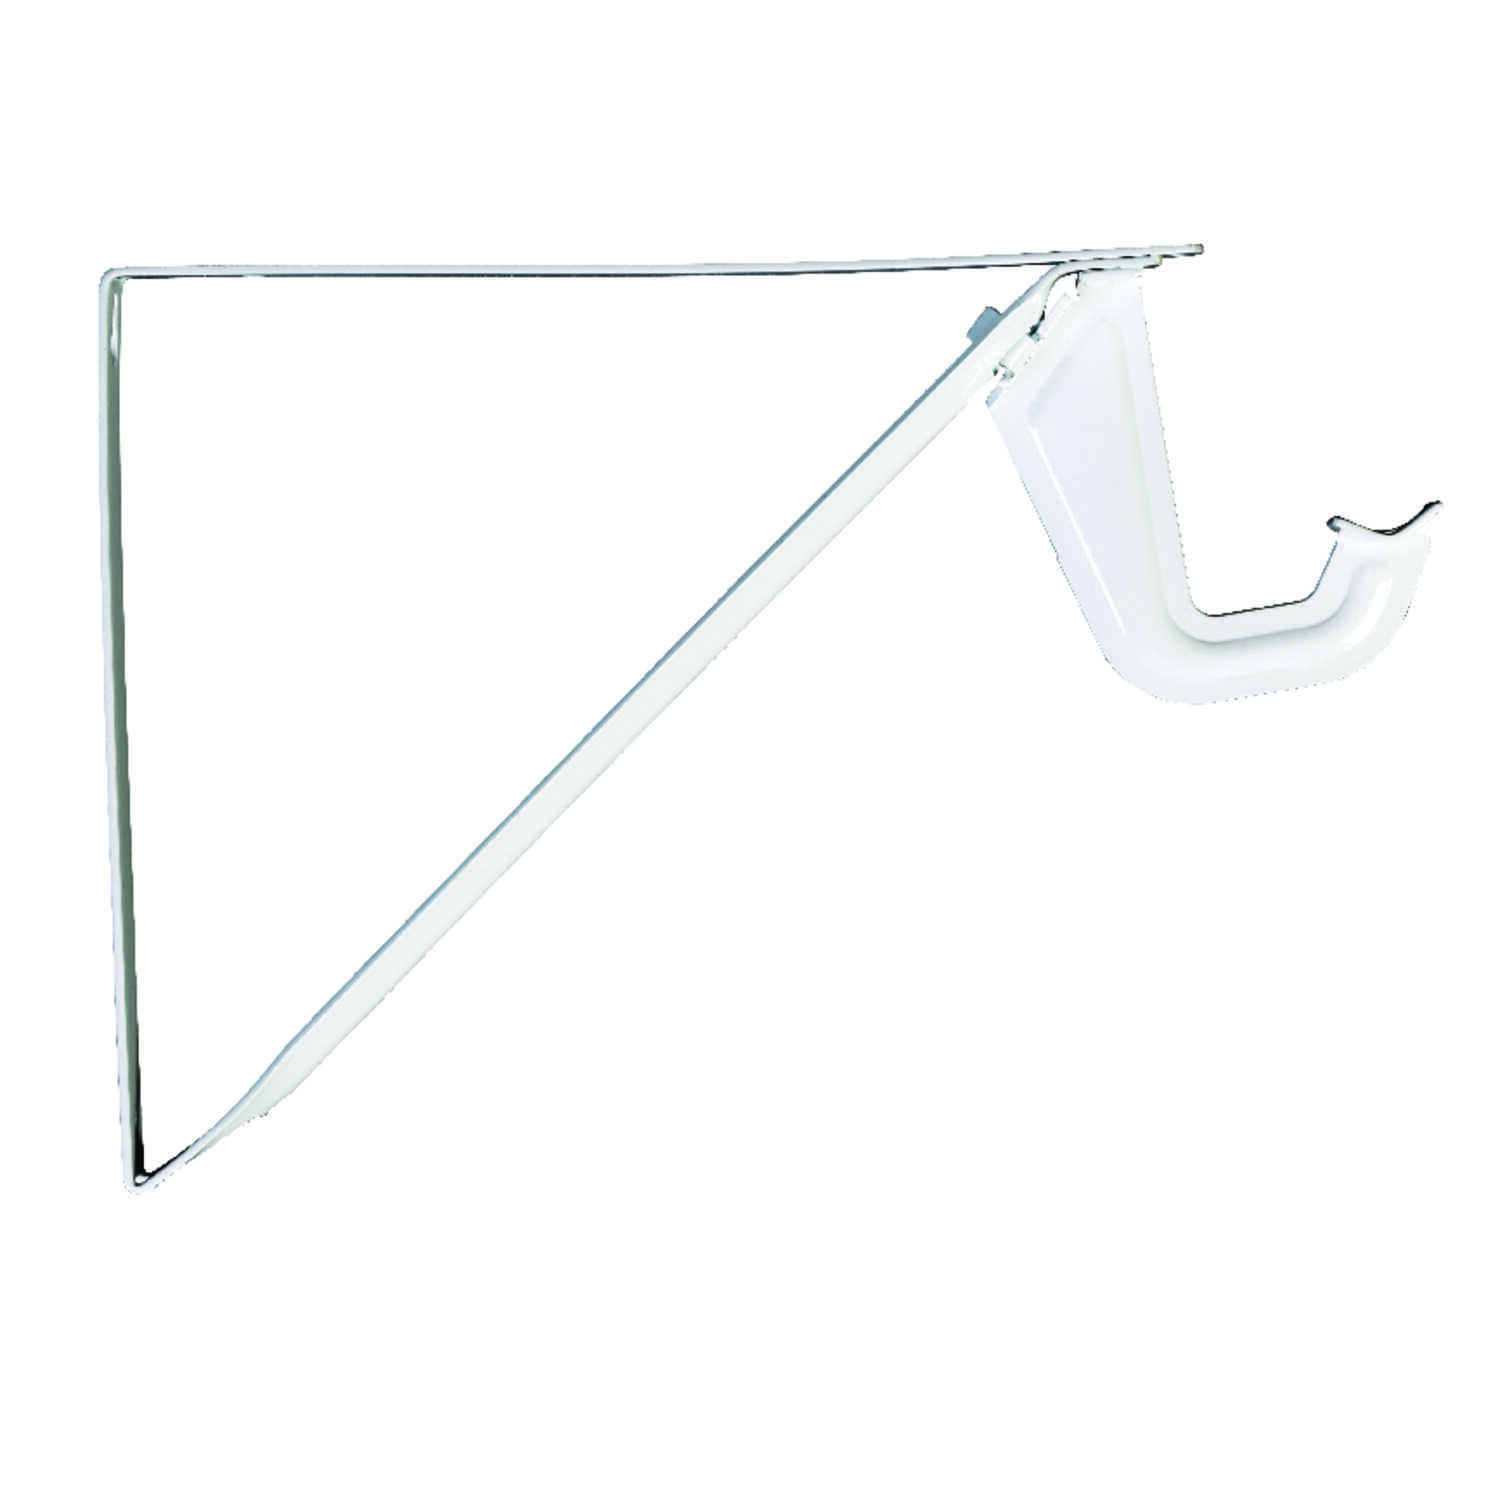 Knape & Vogt  John Sterling  White  Steel  Shelf/Rod  Bracket  9 in. H x 10.25 in. L 250 lb.